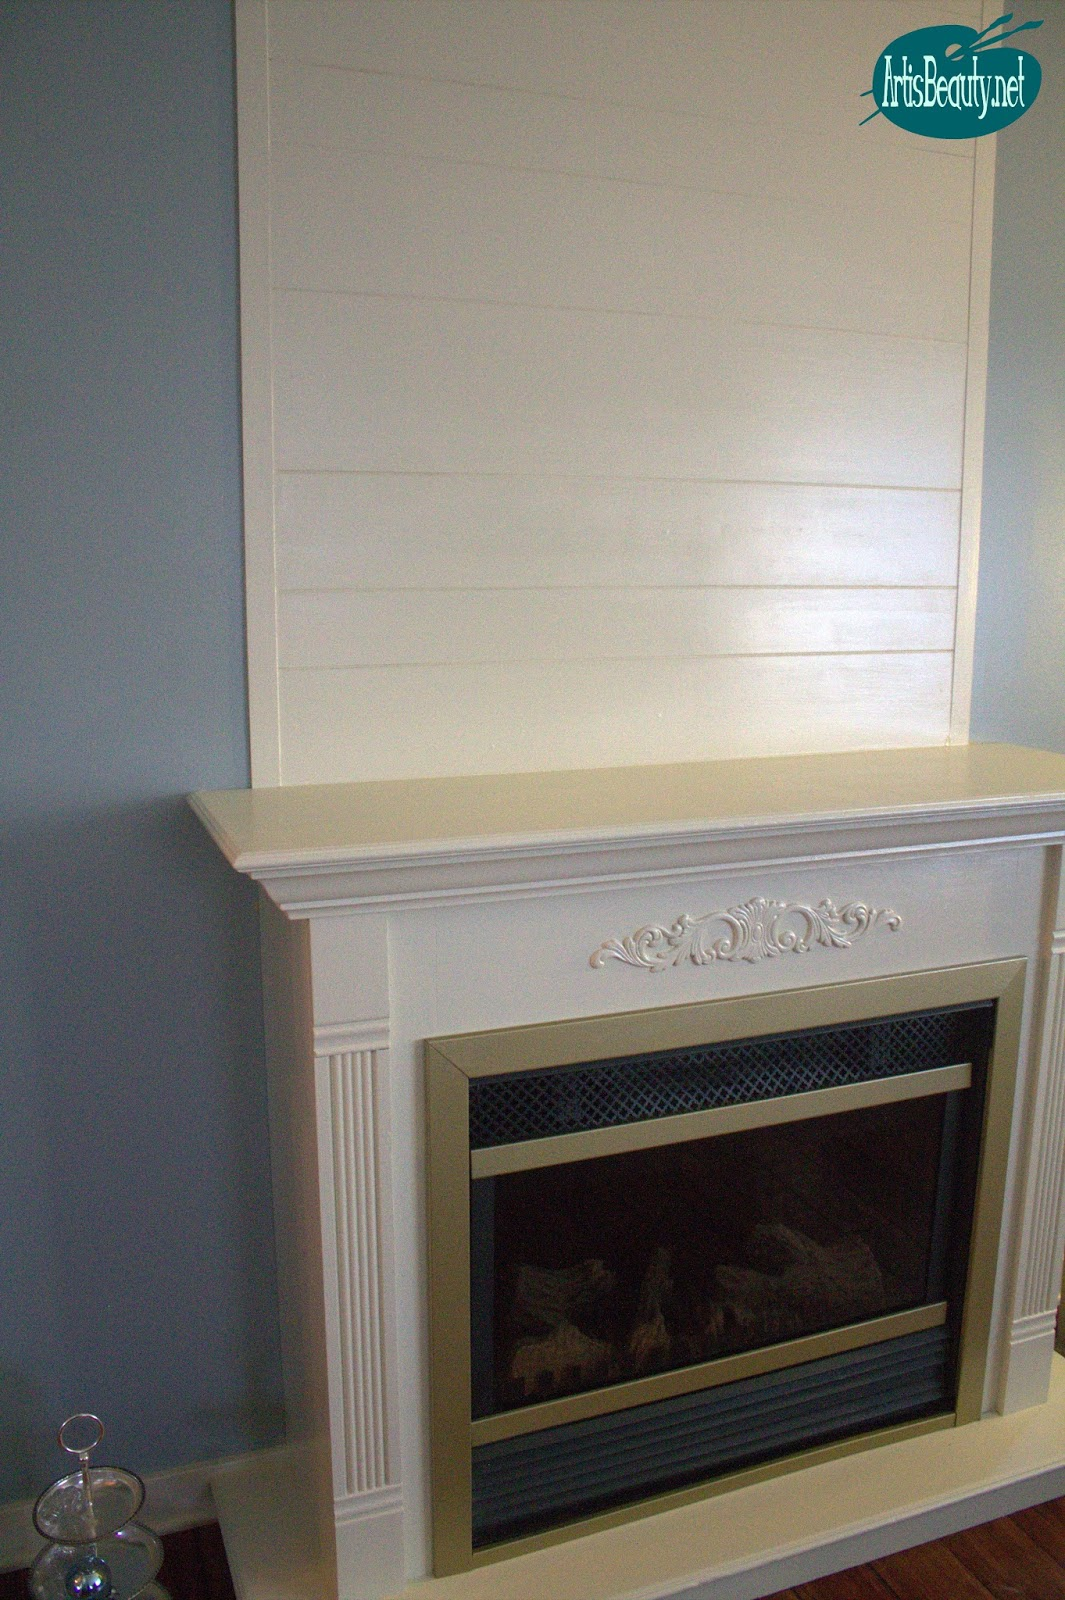 art is beauty cheap and easy faux shiplap fireplace makeover diy for under 30